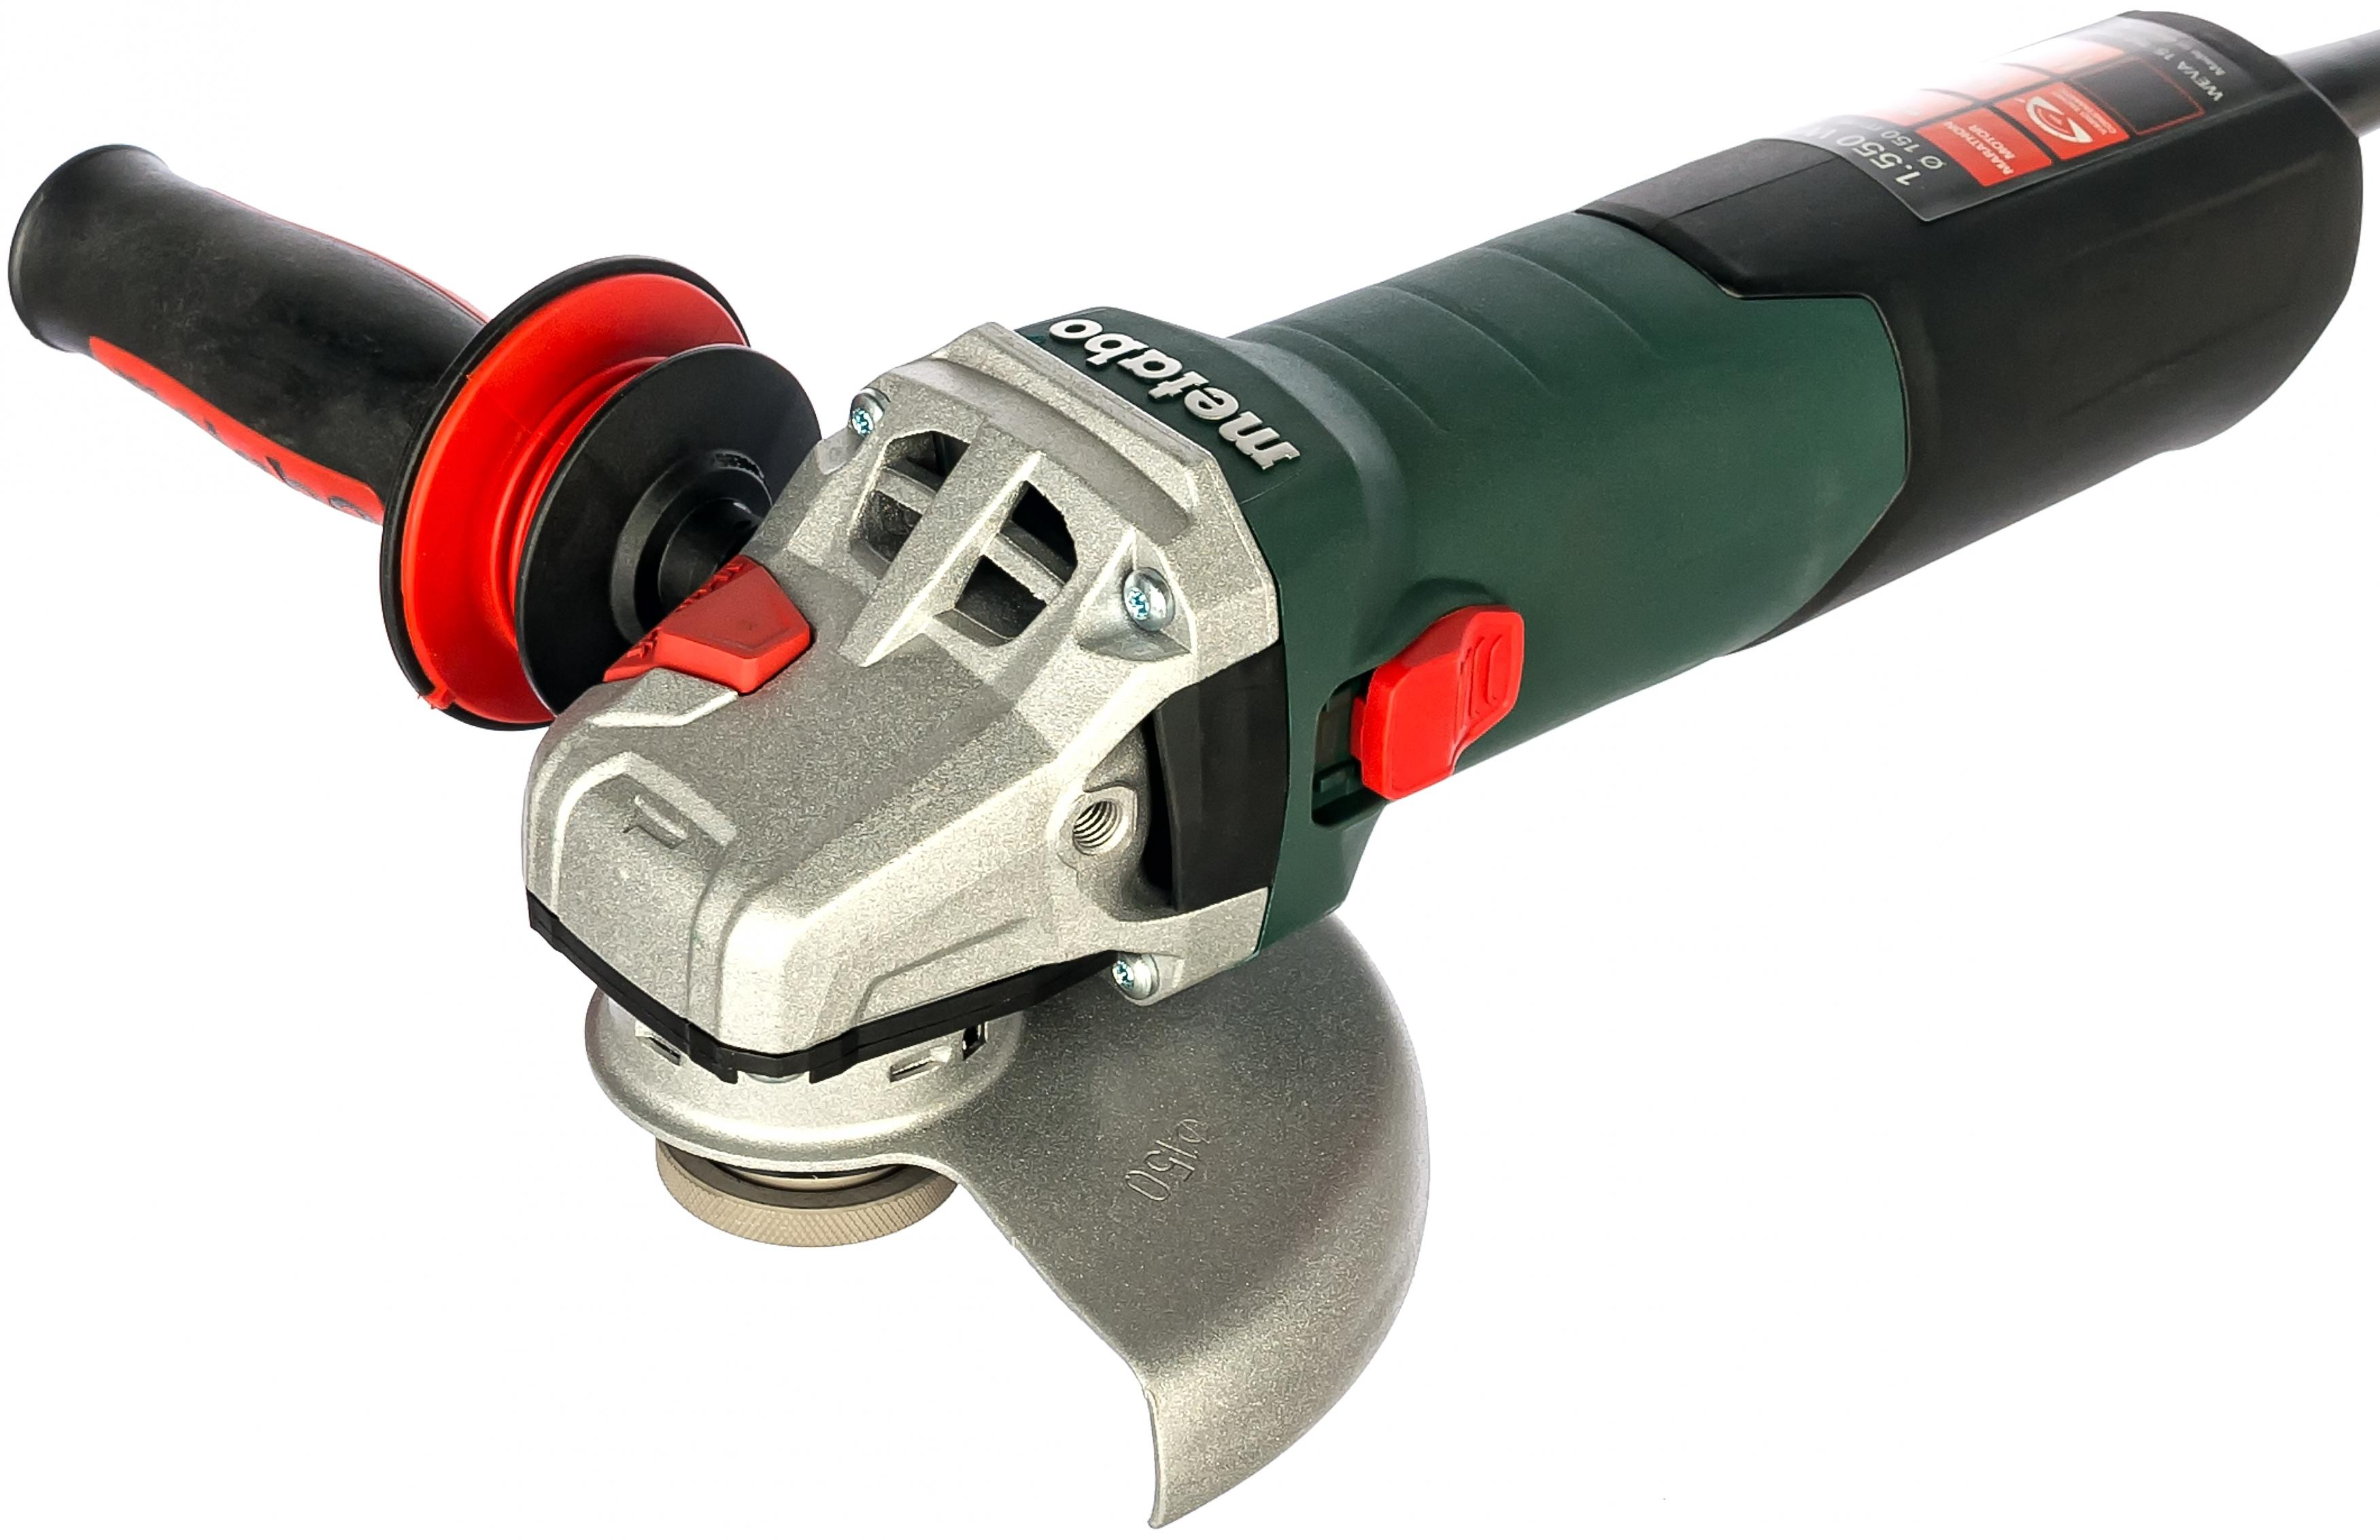 УШМ (болгарка) Metabo Weva 15-150 quick (600506000) metabo 15 150 quick